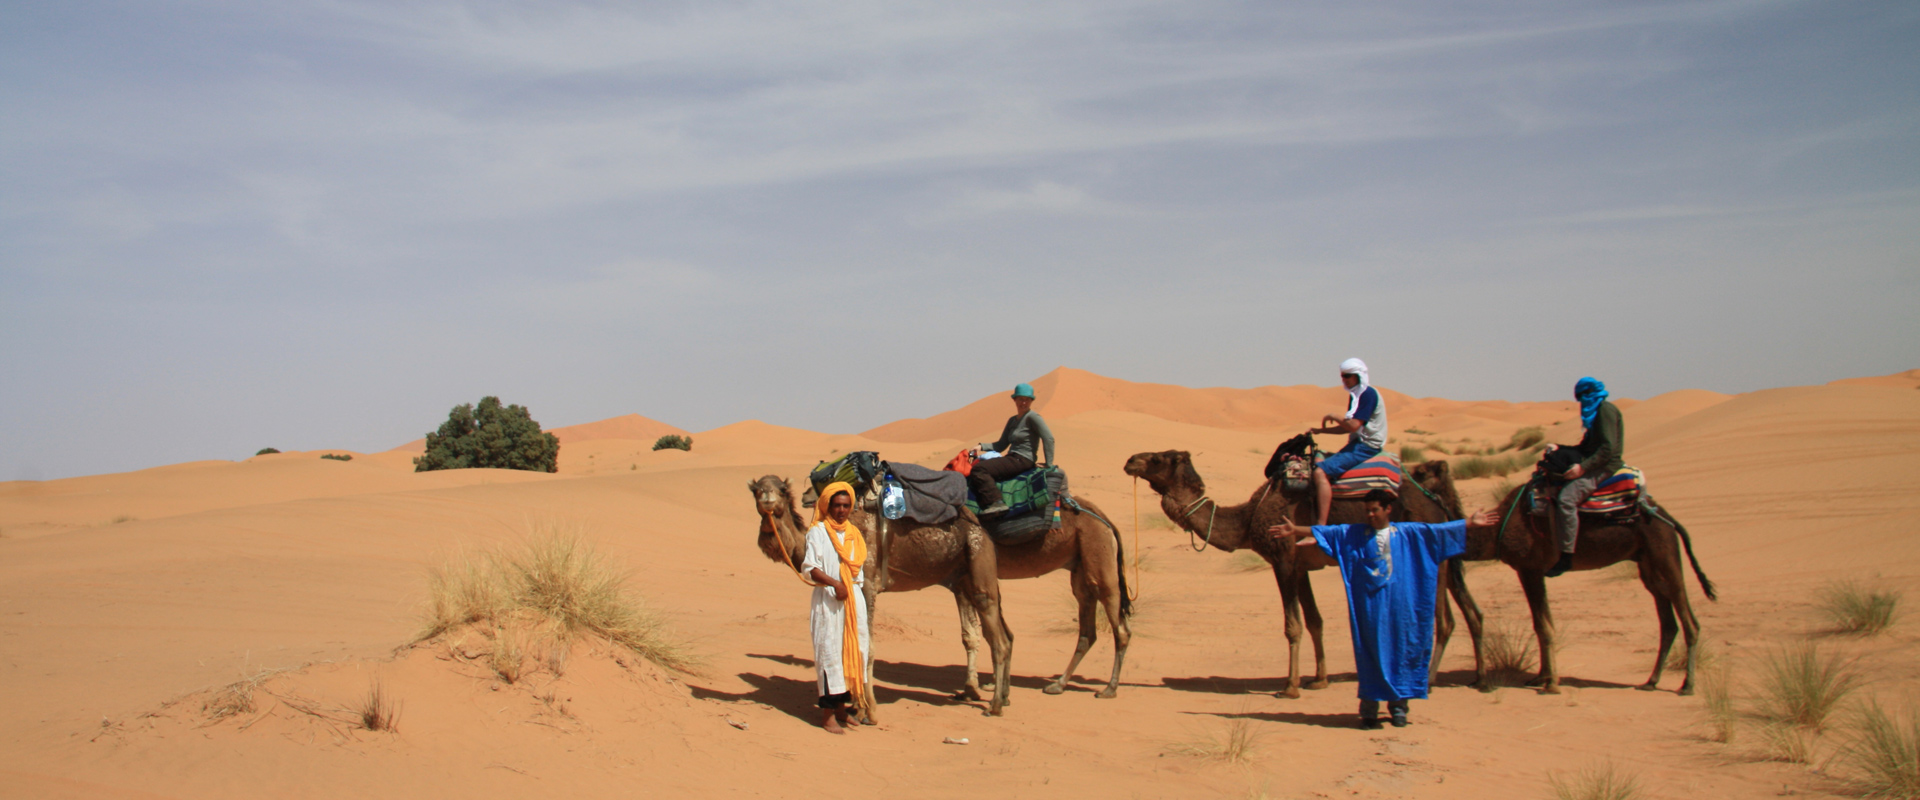 Camel Trek, the perfect way to explore the desert